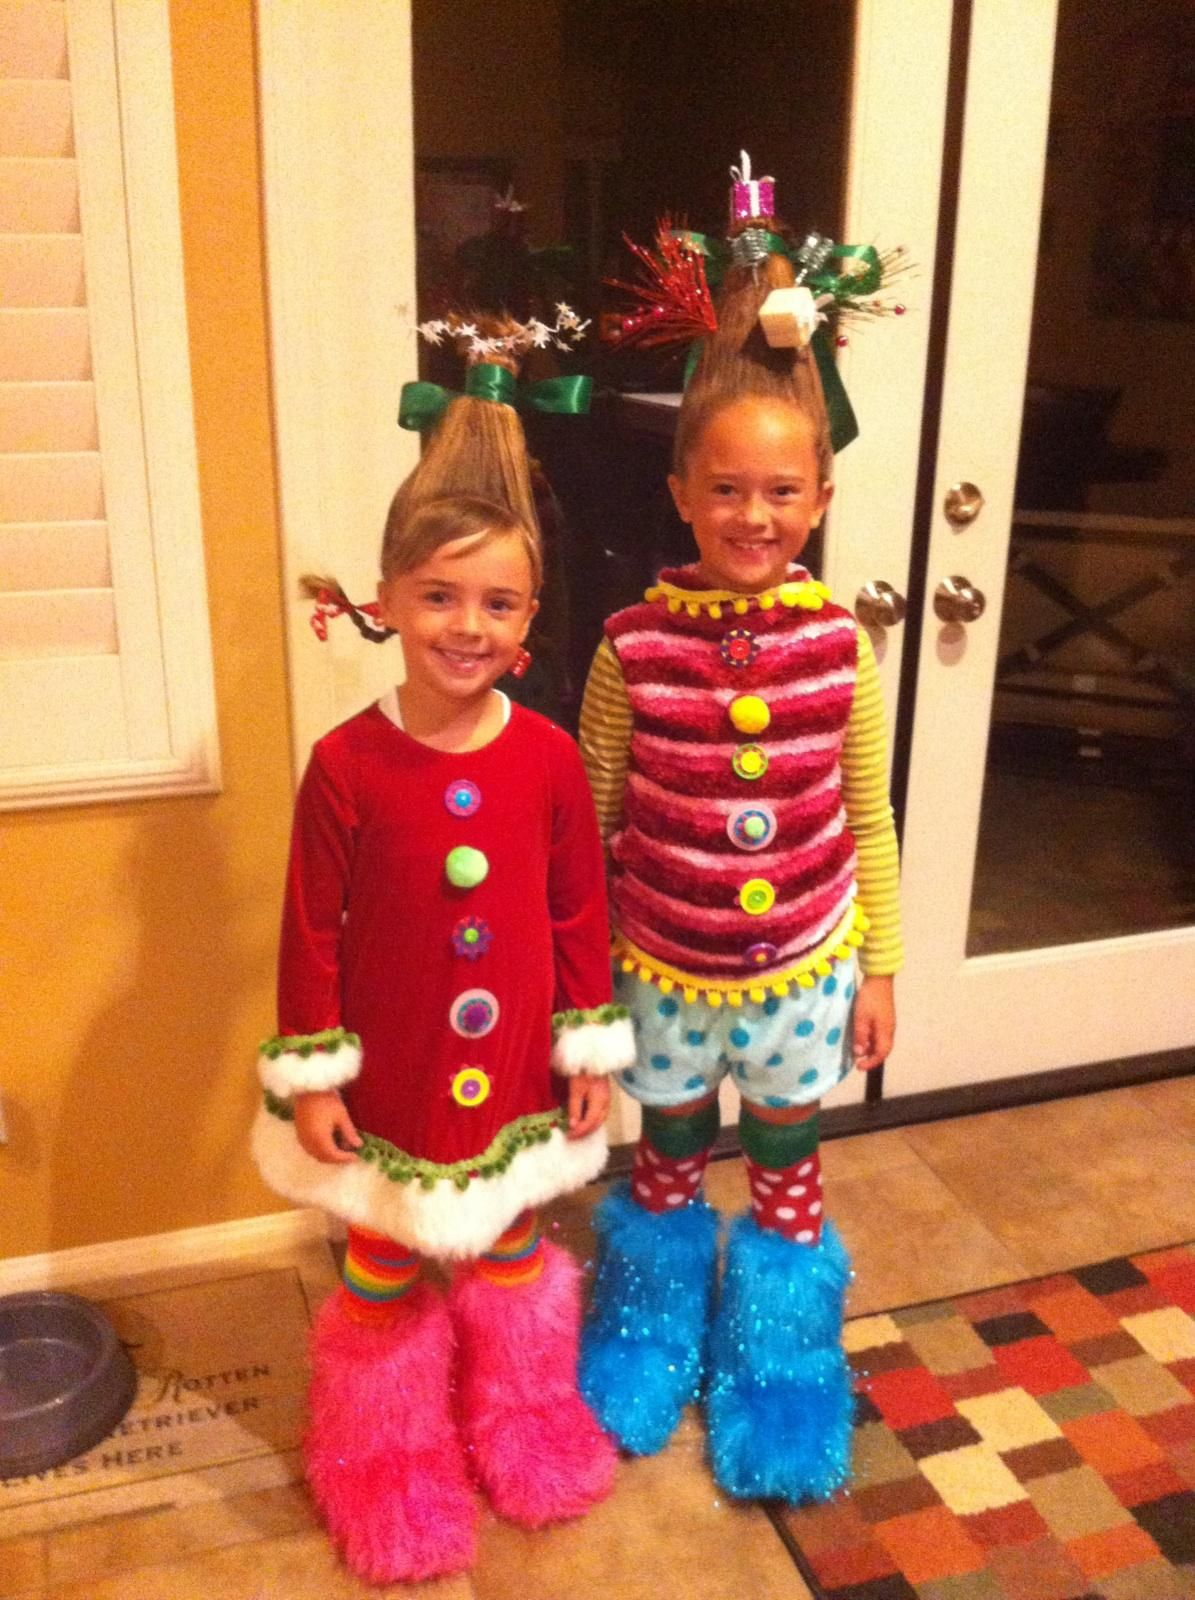 How to make your own grinch costume - Stylish Christmas Costume Ideas For Your Holiday Party